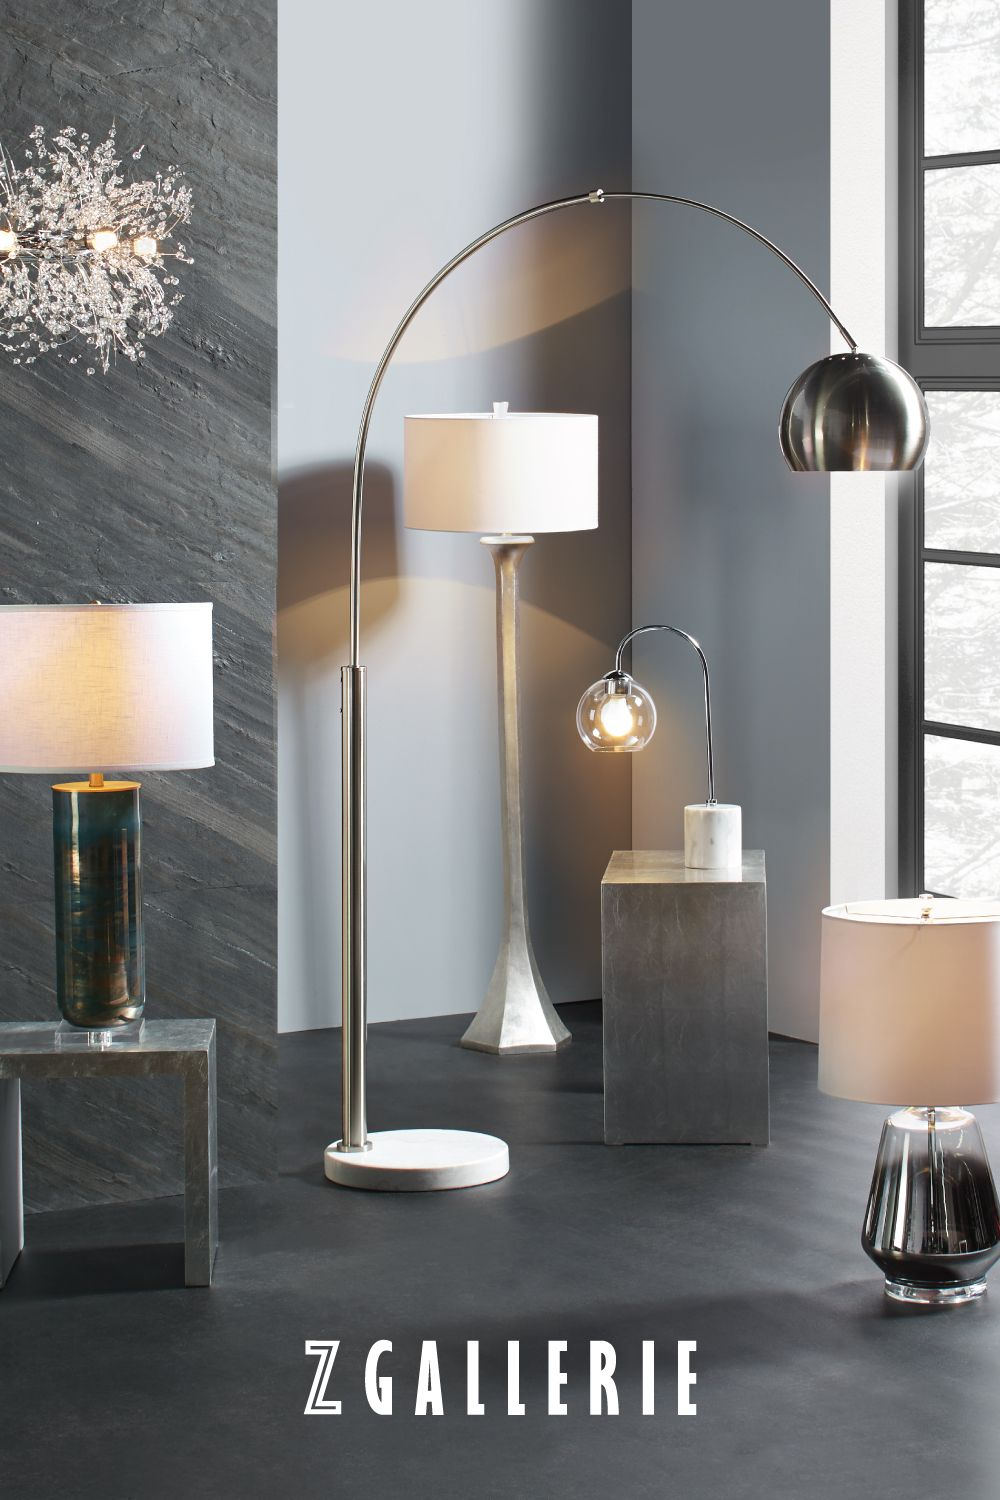 Suffuse your space with the elegant ambiance of Z Gallerie